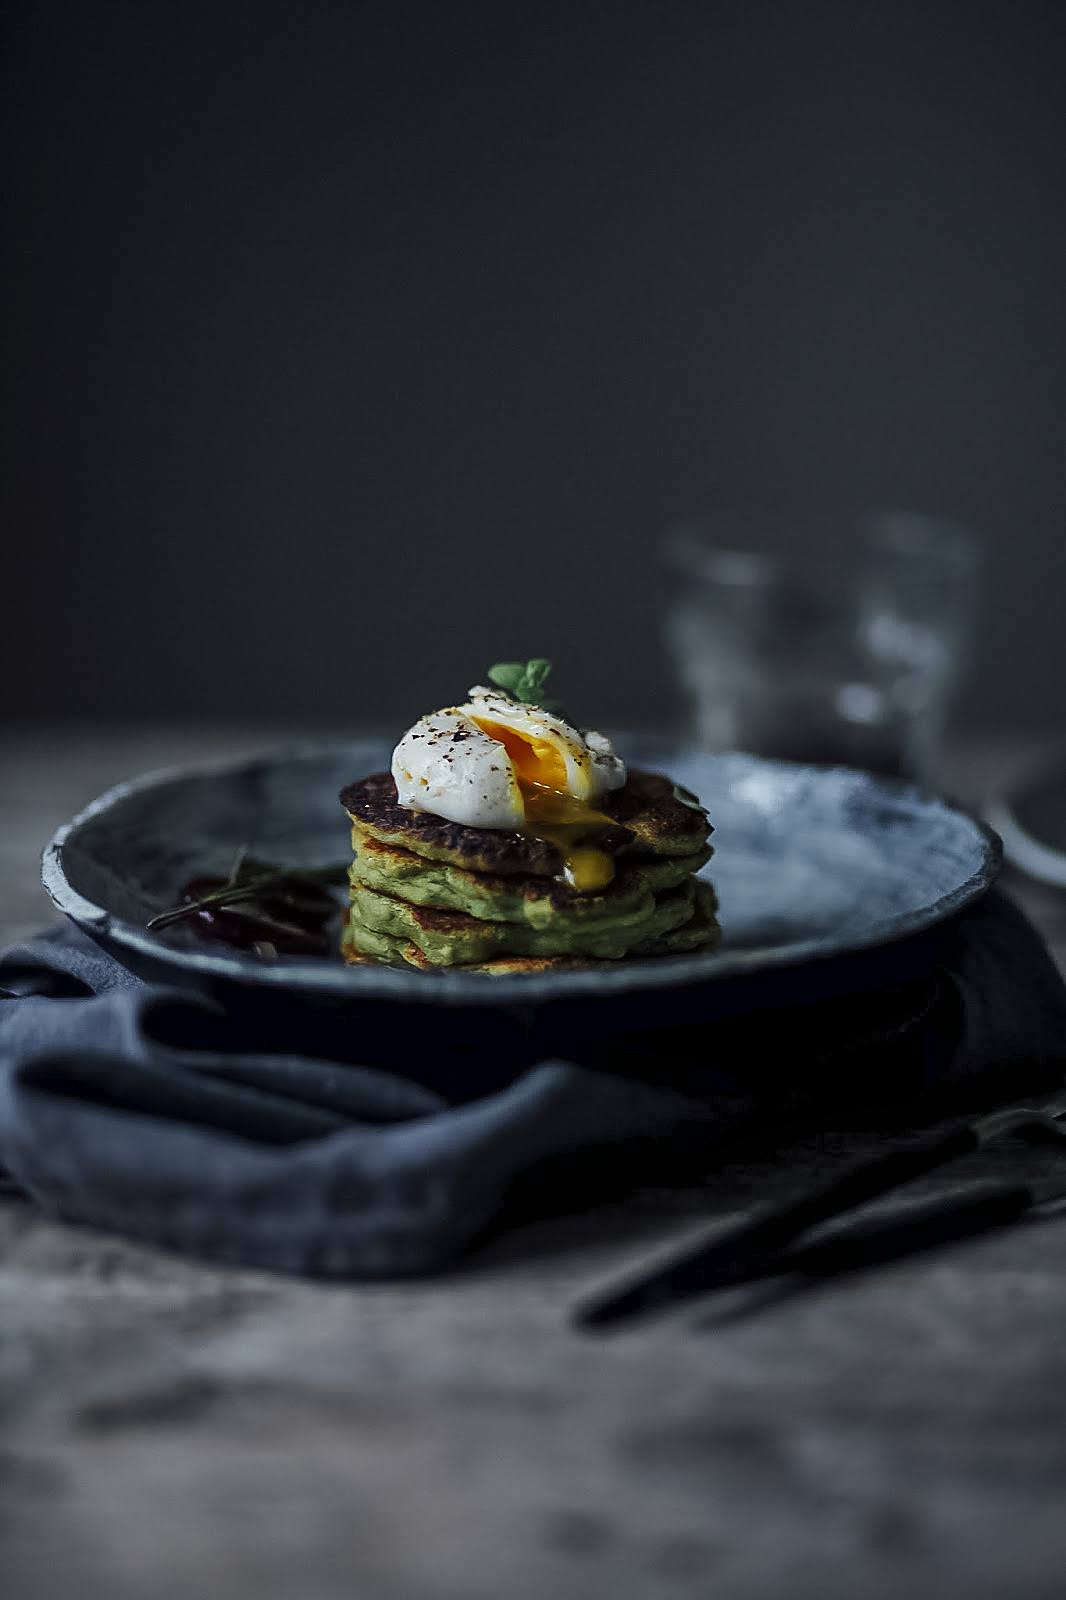 Gluten-free Avocado Pancakes with Poached Egg